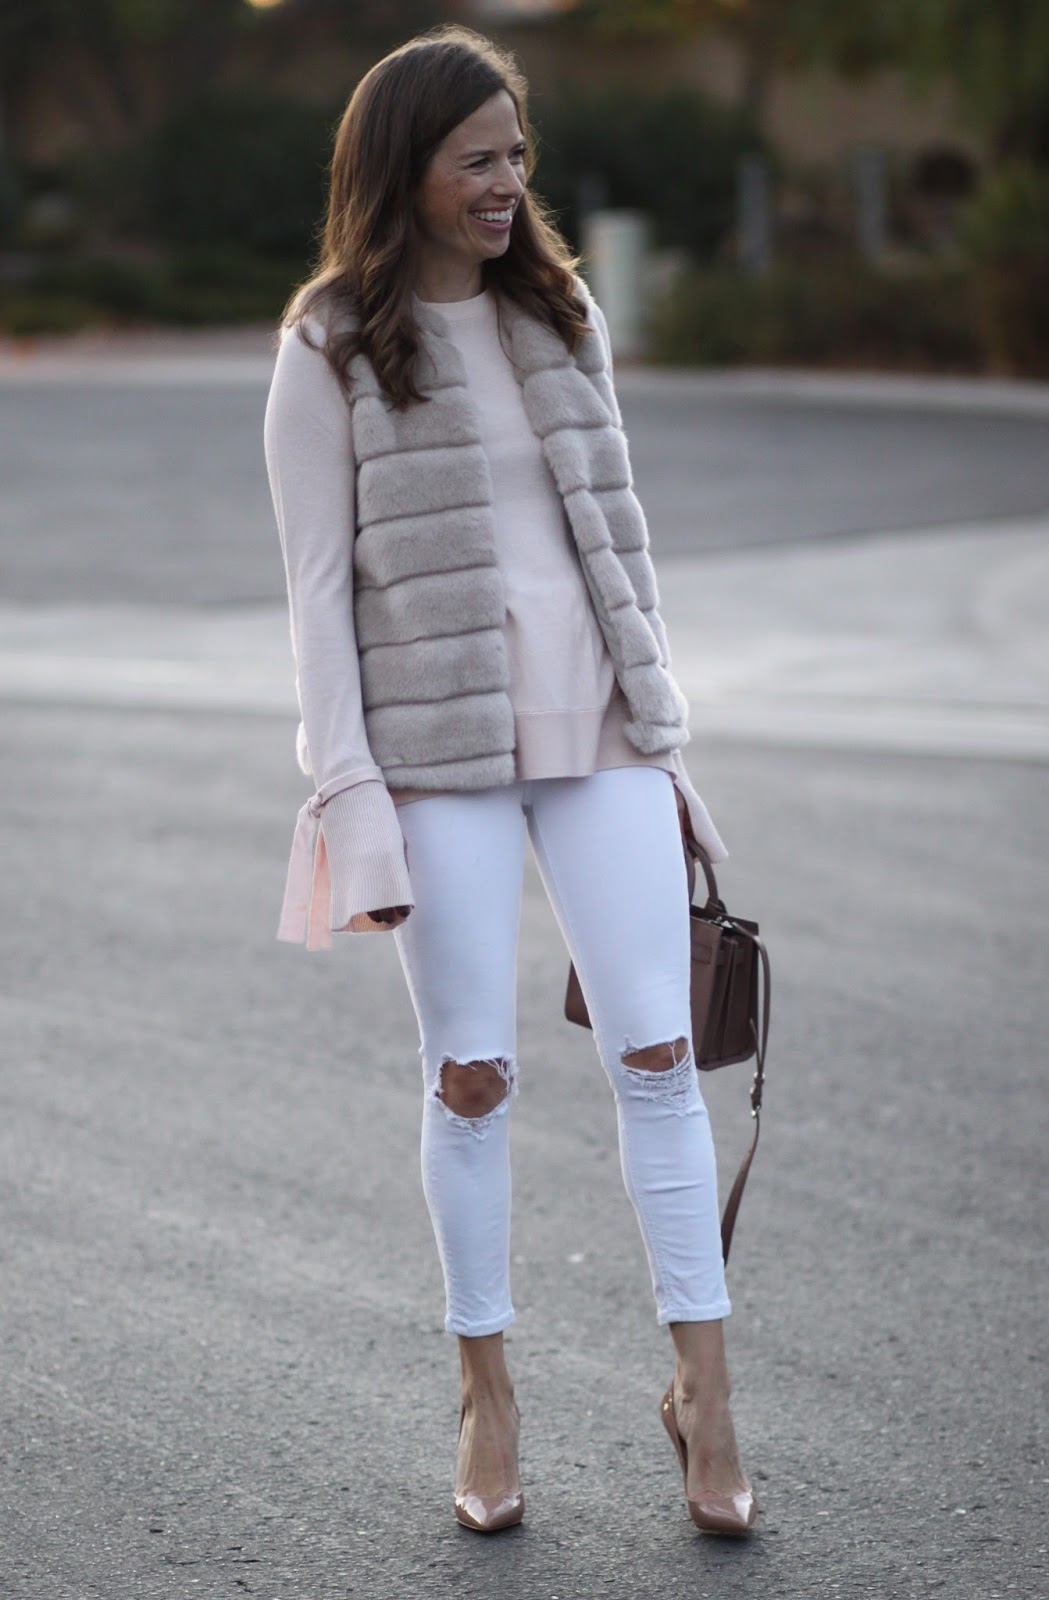 louboutin and white jeans outfit